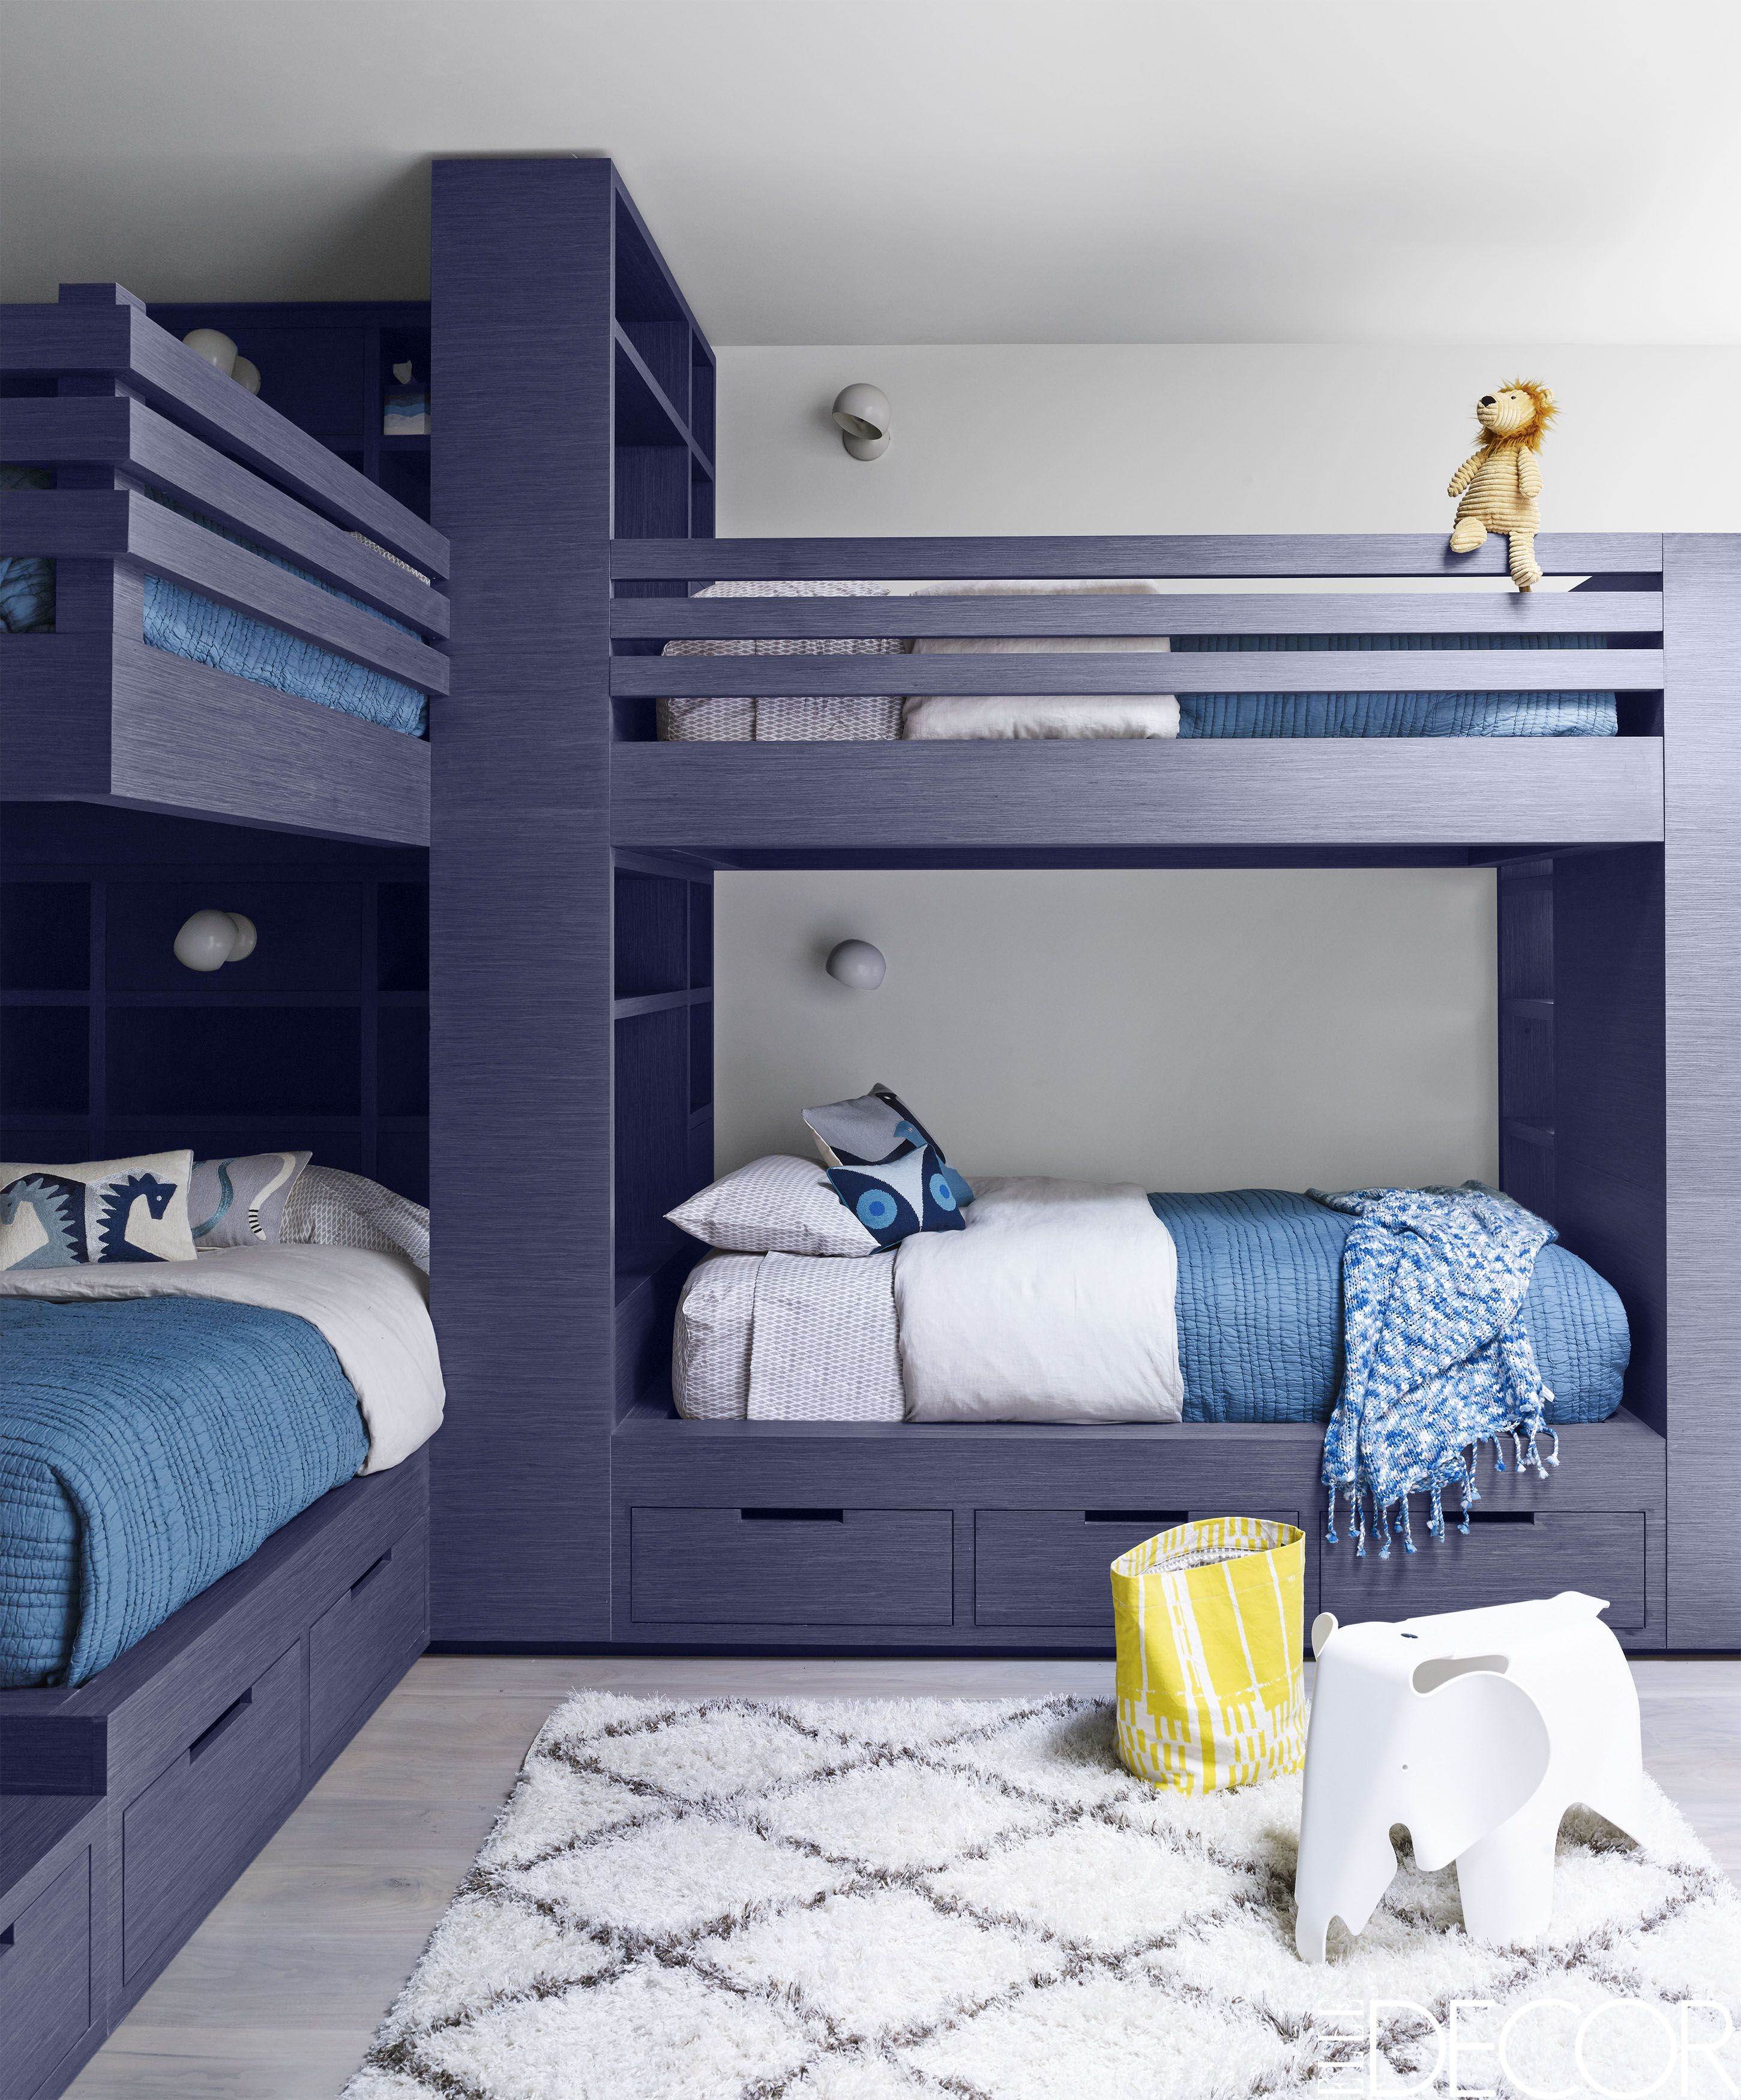 Decor Ideas Bedroom 15 cool boys bedroom ideas - decorating a little boy room